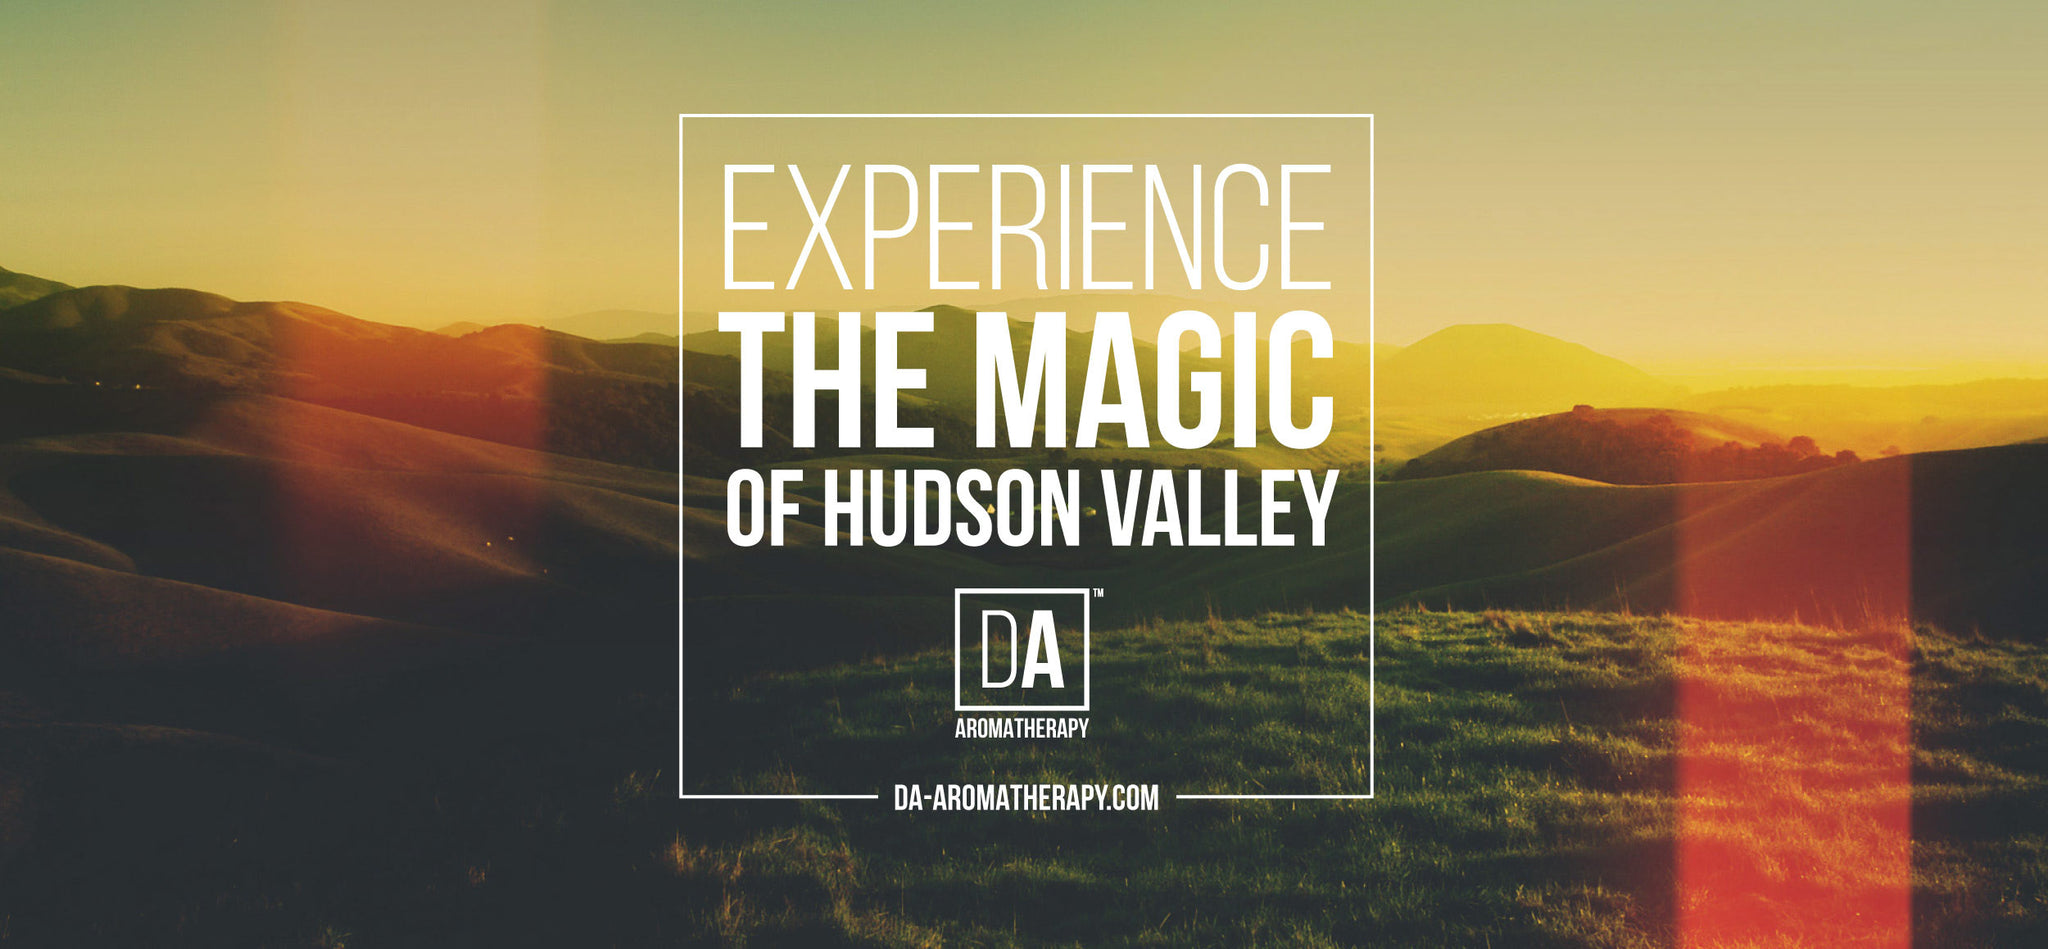 DA Aromatherapy Collection - Experience the Magic of Hudson Valley